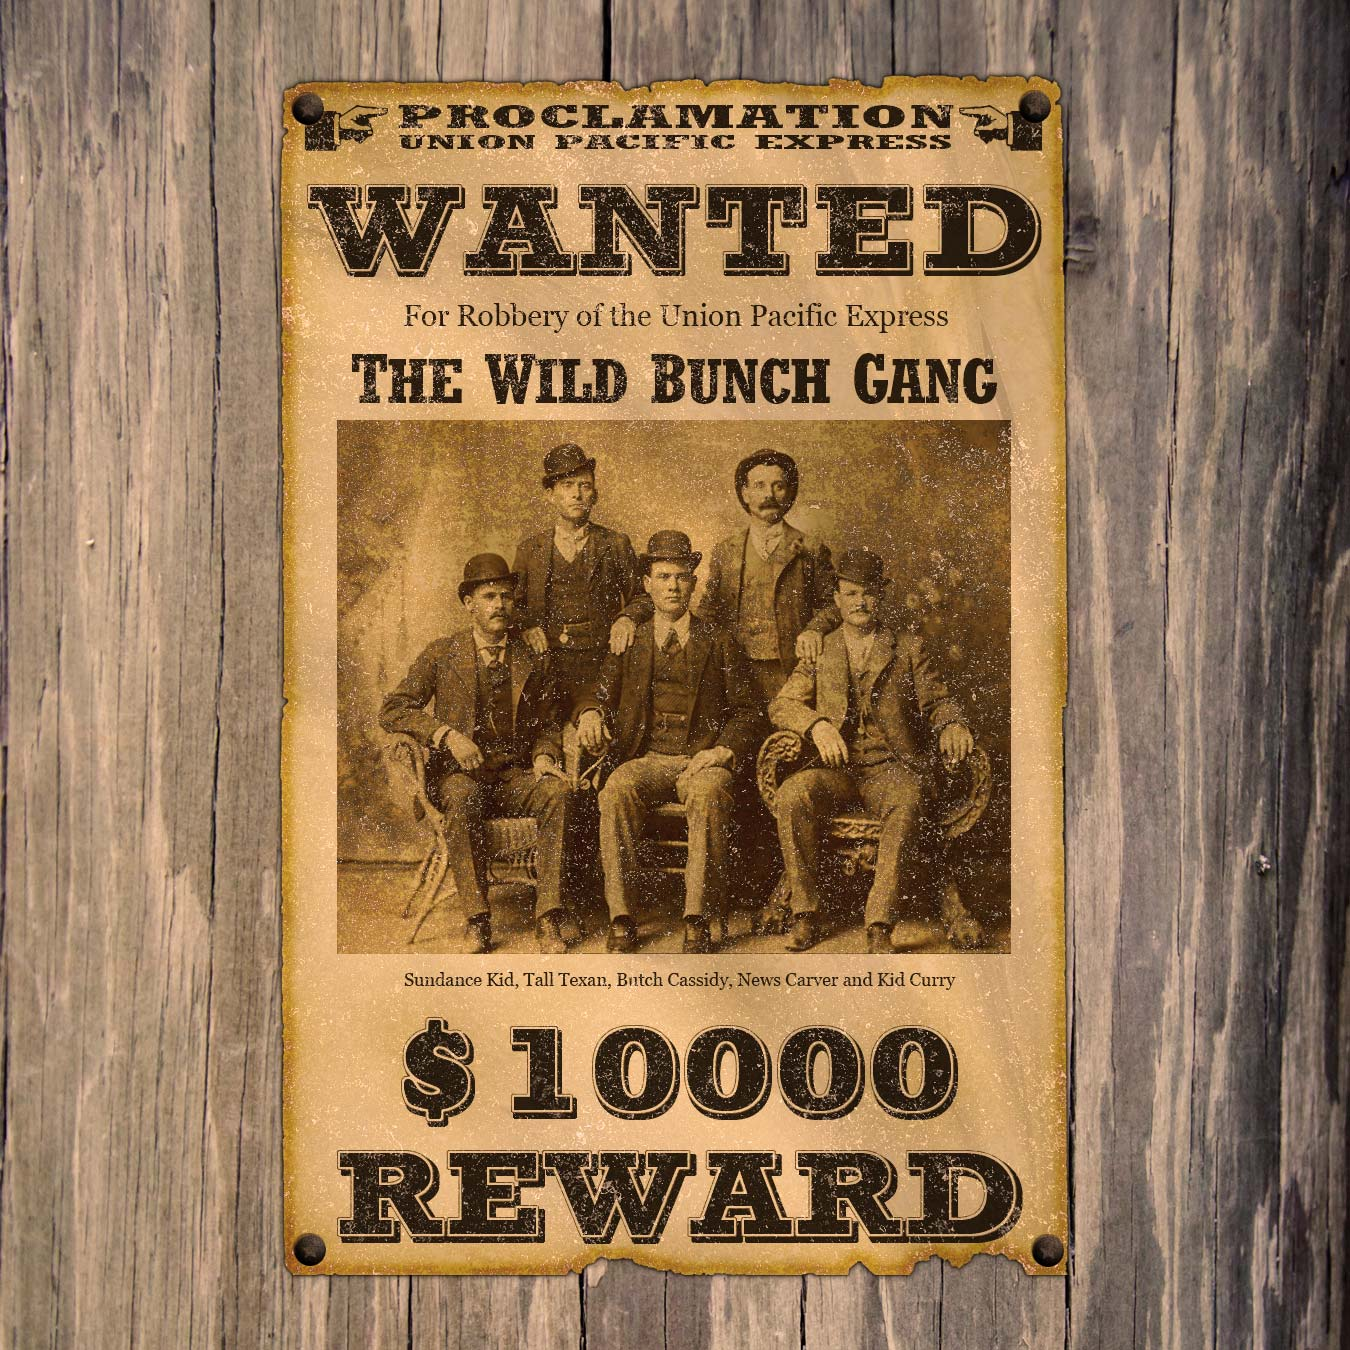 17 Wild West Wanted Poster Font Images